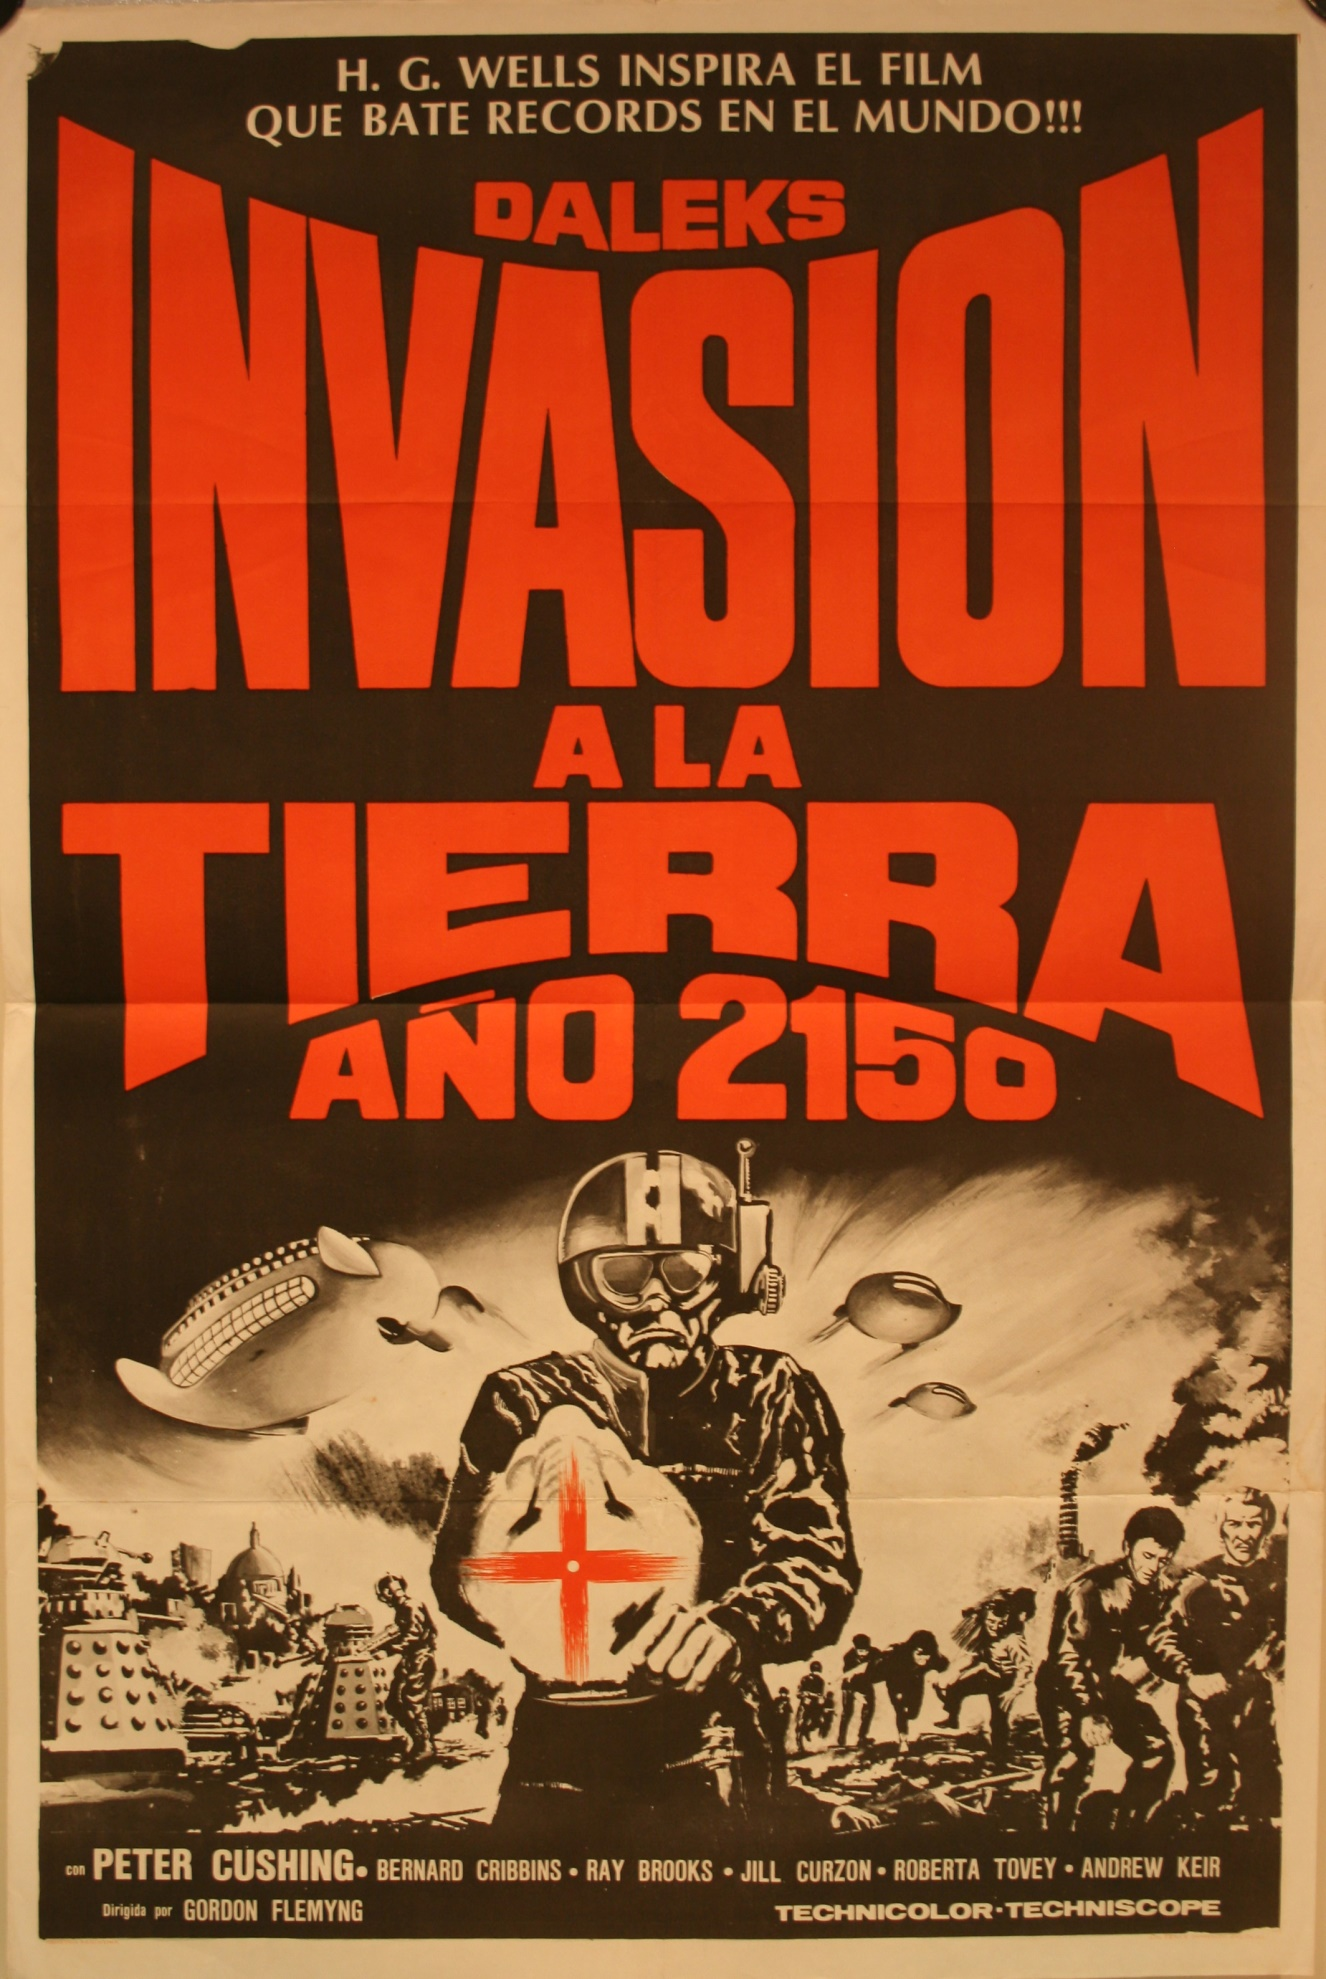 Argentinian One-Sheet Poster